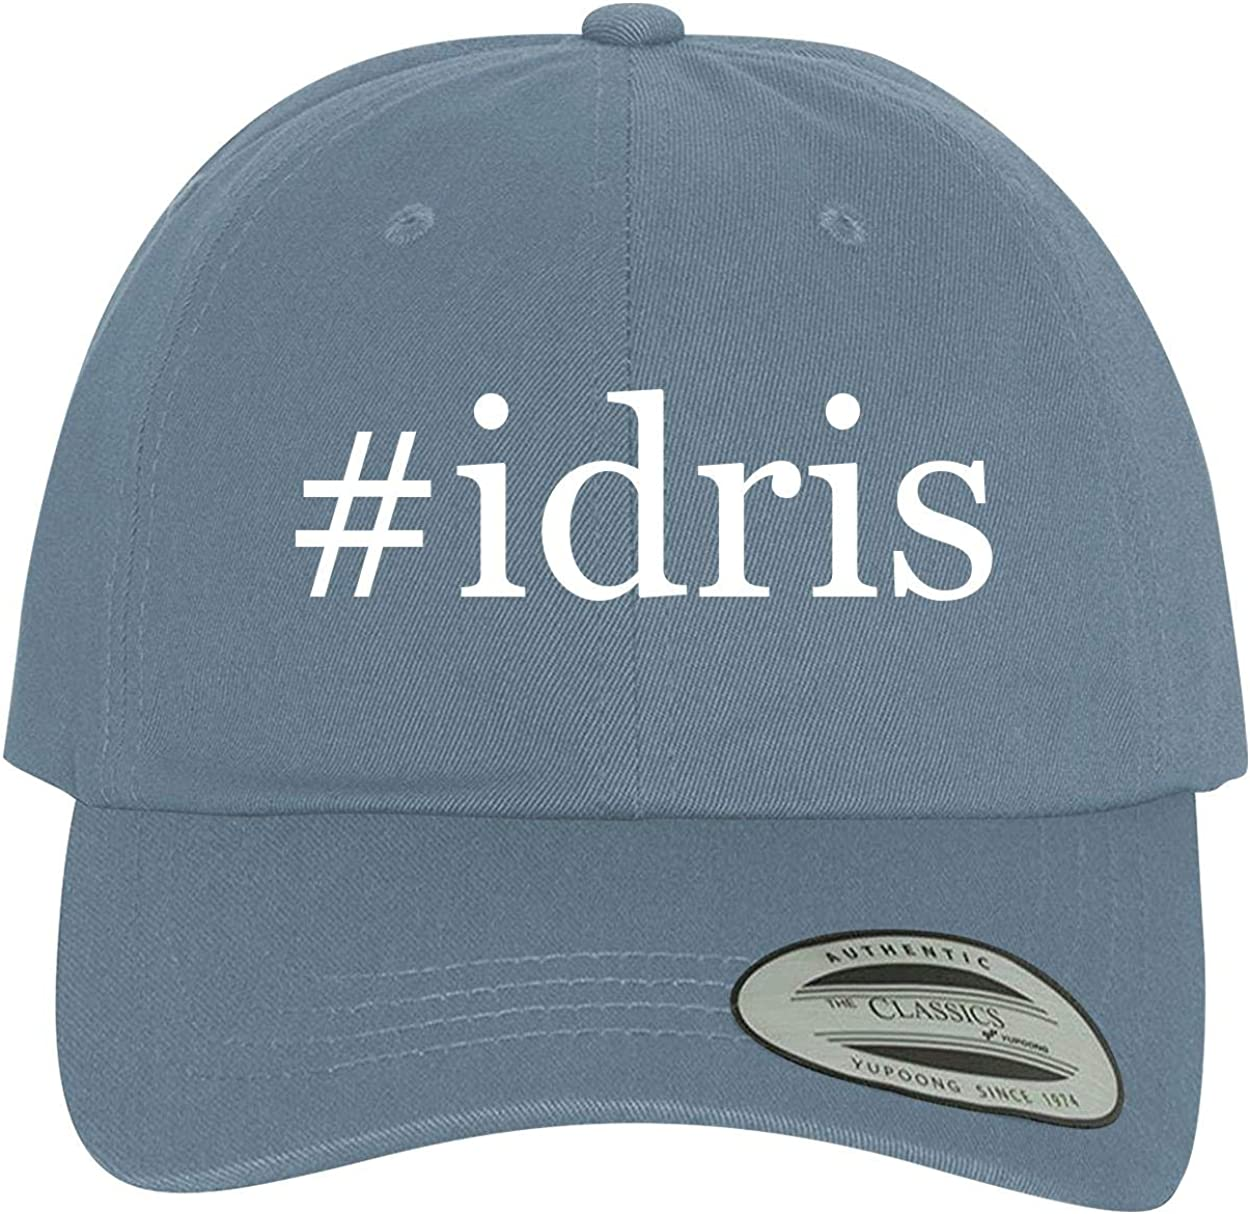 Comfortable Dad Hat Baseball Cap BH Cool Designs #Idris